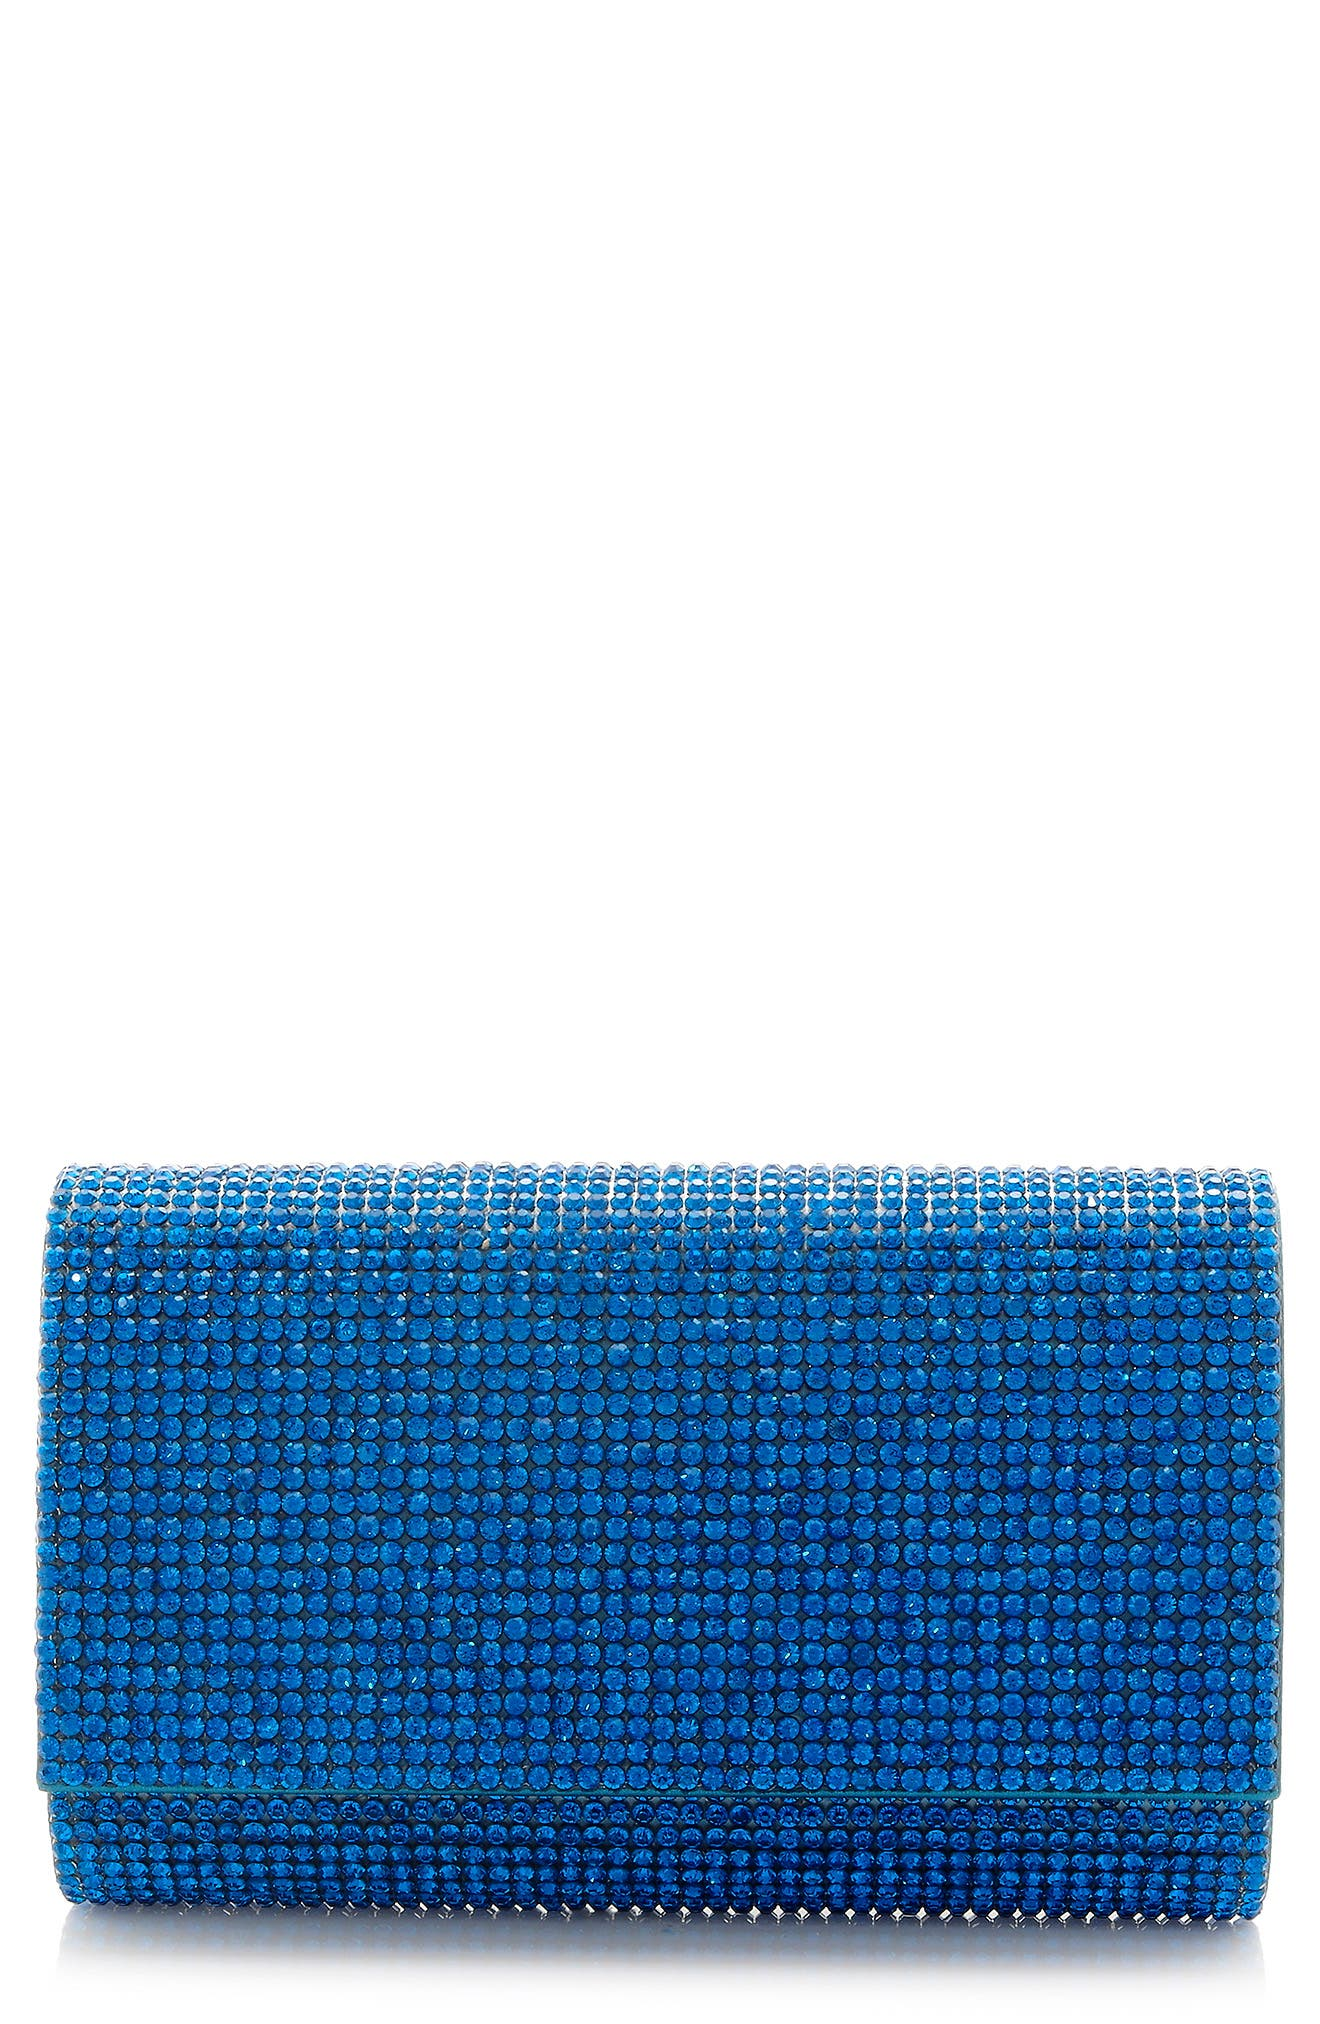 Couture Fizzy Beaded Clutch